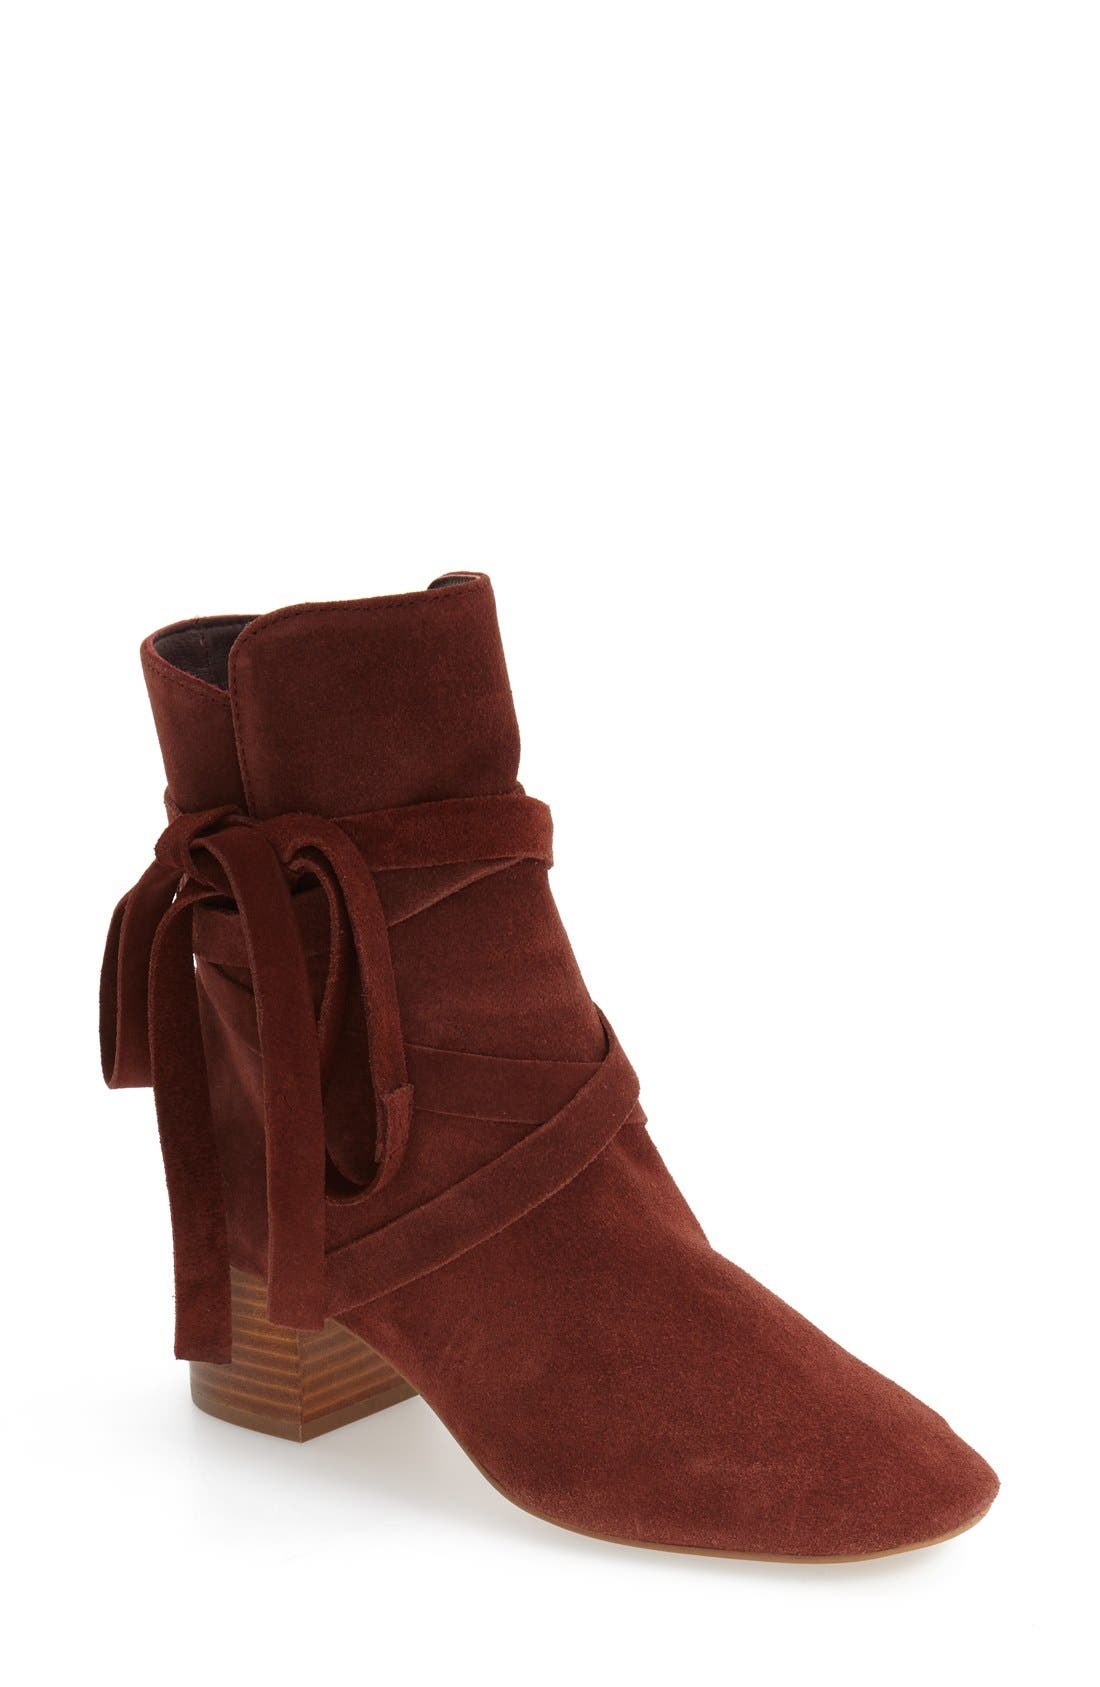 'Anabel' Lace-Up Boots,                         Main,                         color, 220